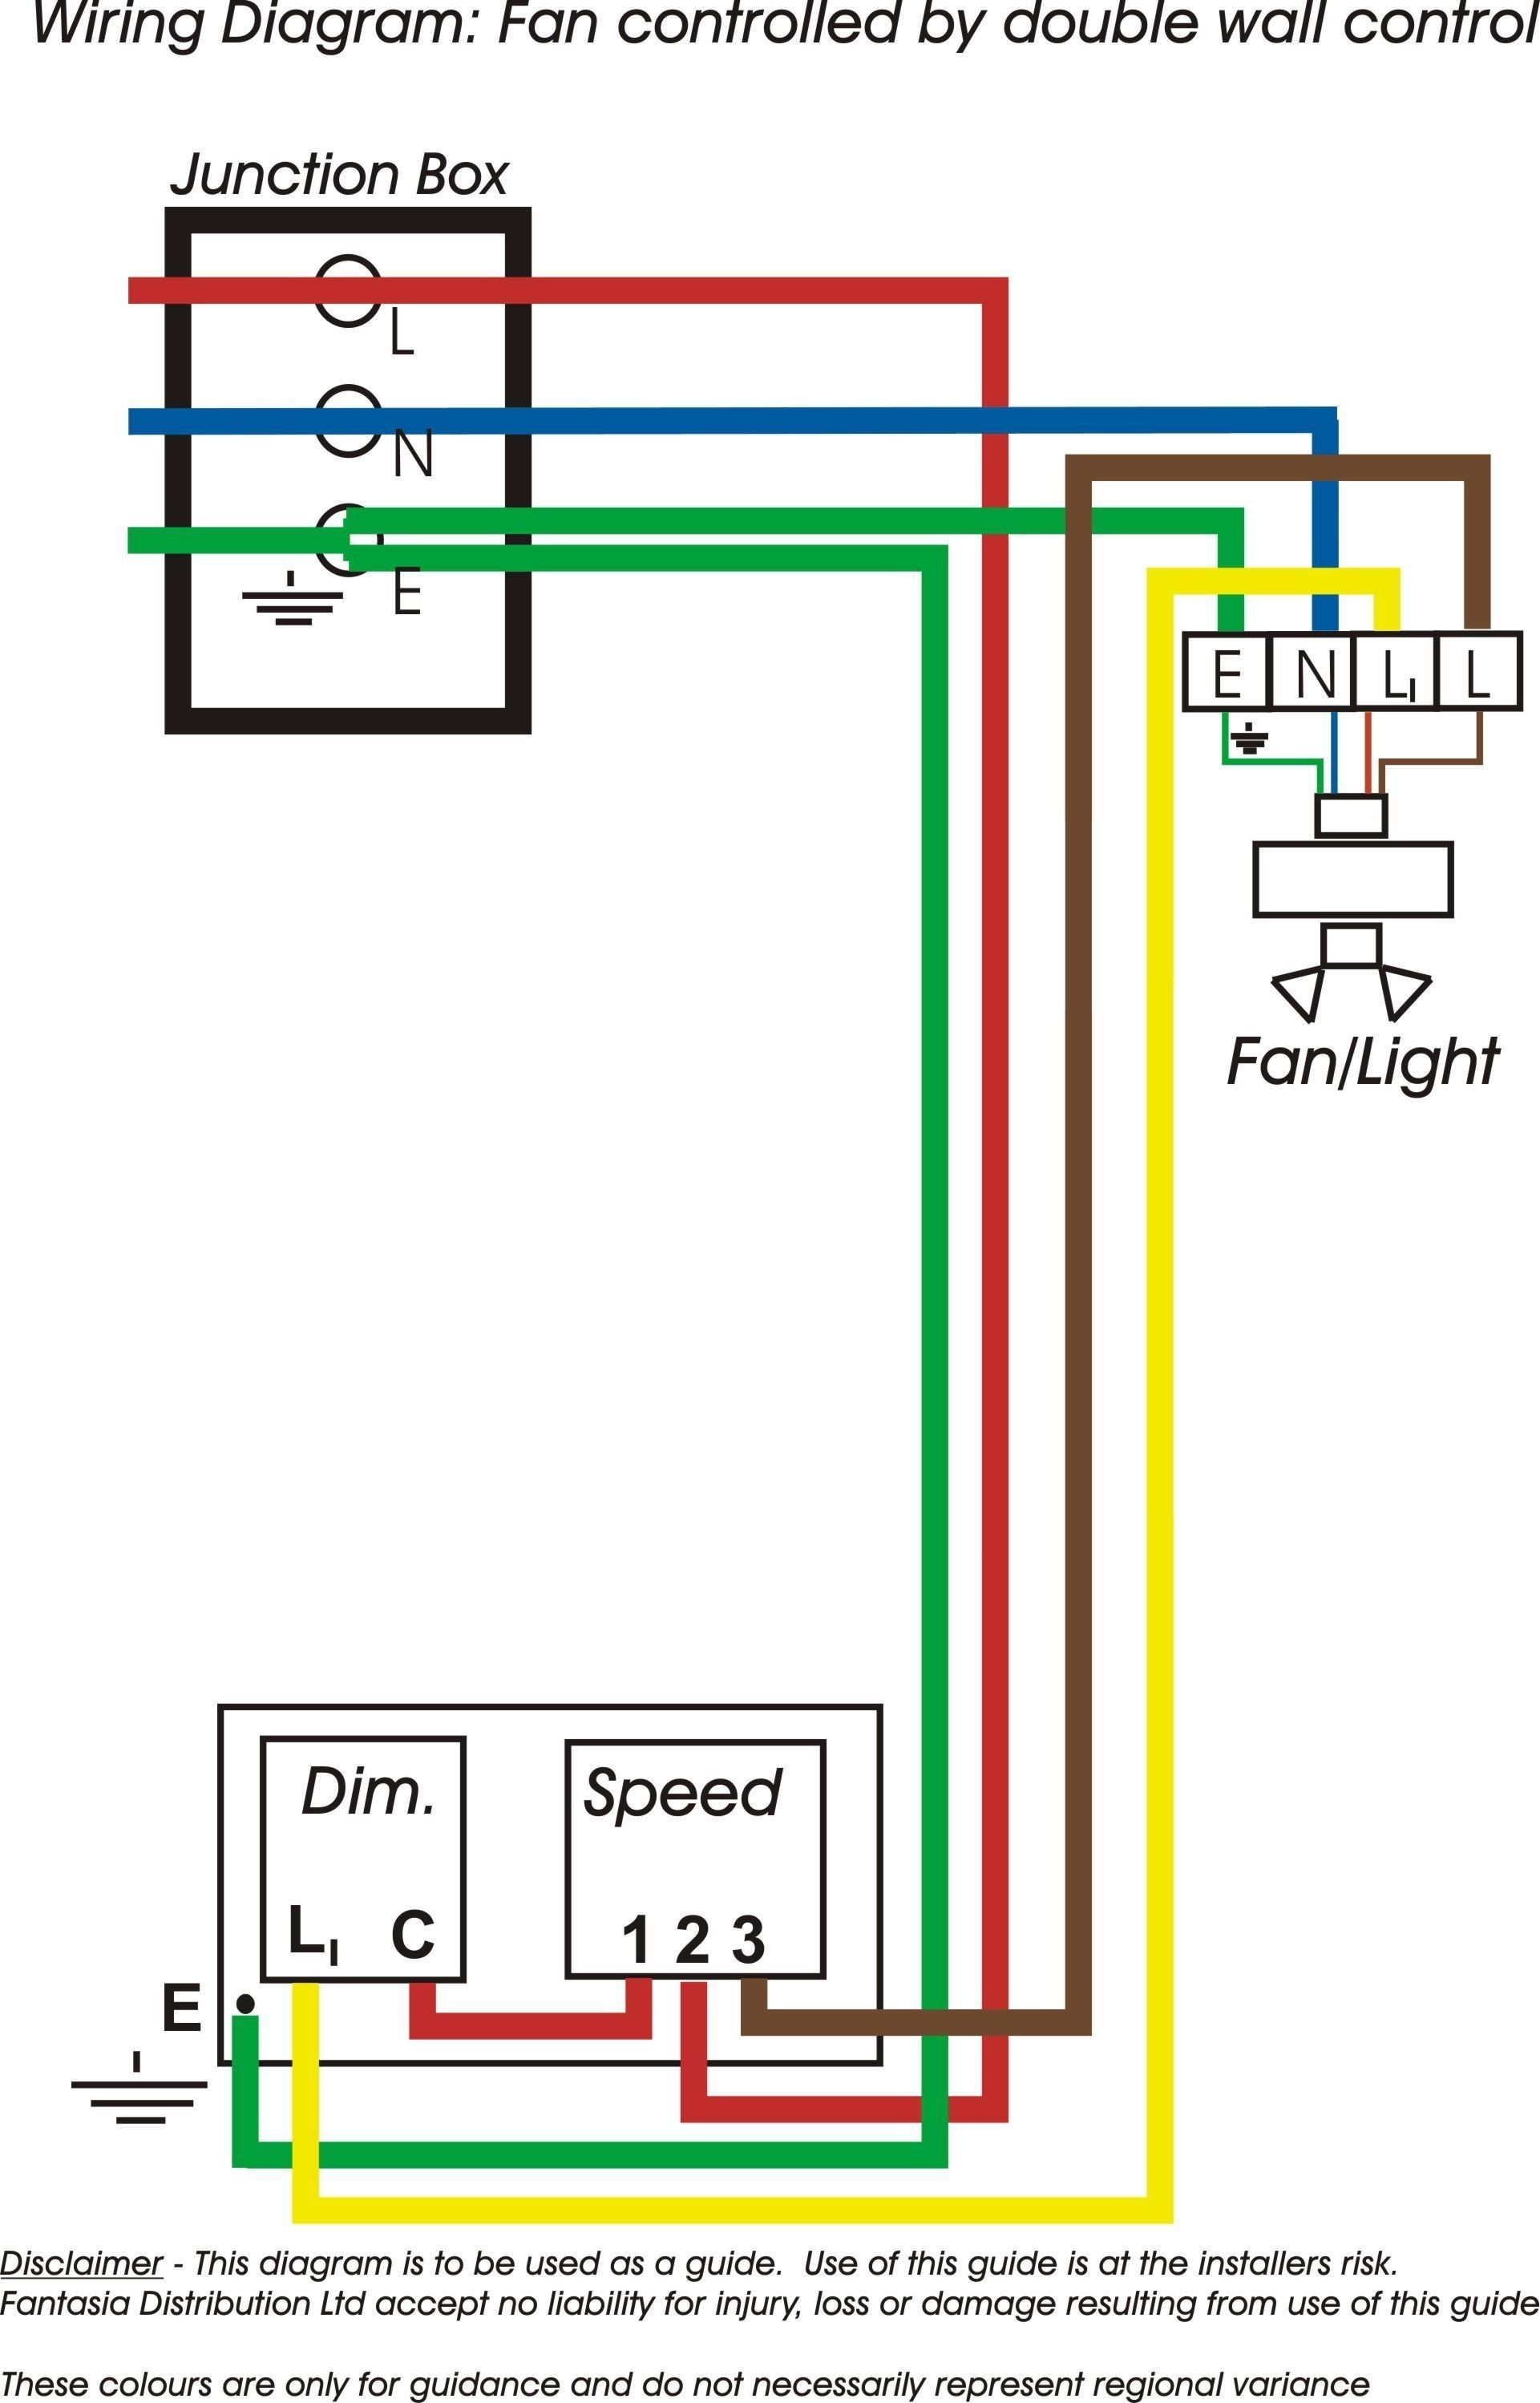 New Light Switch Wire Colors Diagram Wiringdiagram Diagramming Diagramm Visuals Visualisat Ceiling Fan Wiring Ceiling Fan Switch Ceiling Fan Installation